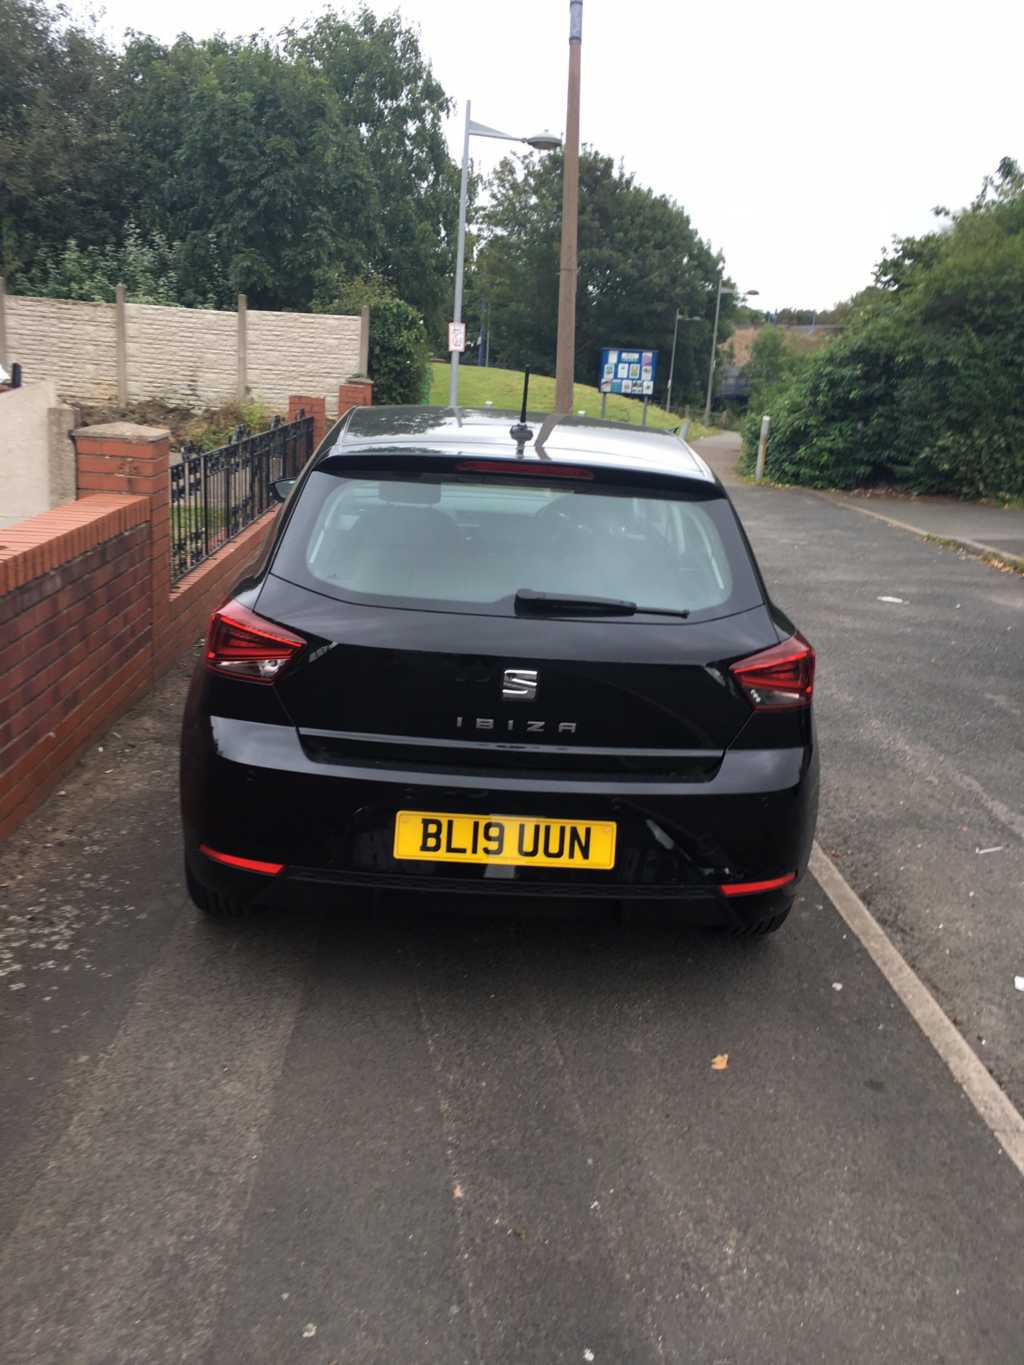 BL19 UUN displaying Selfish Parking